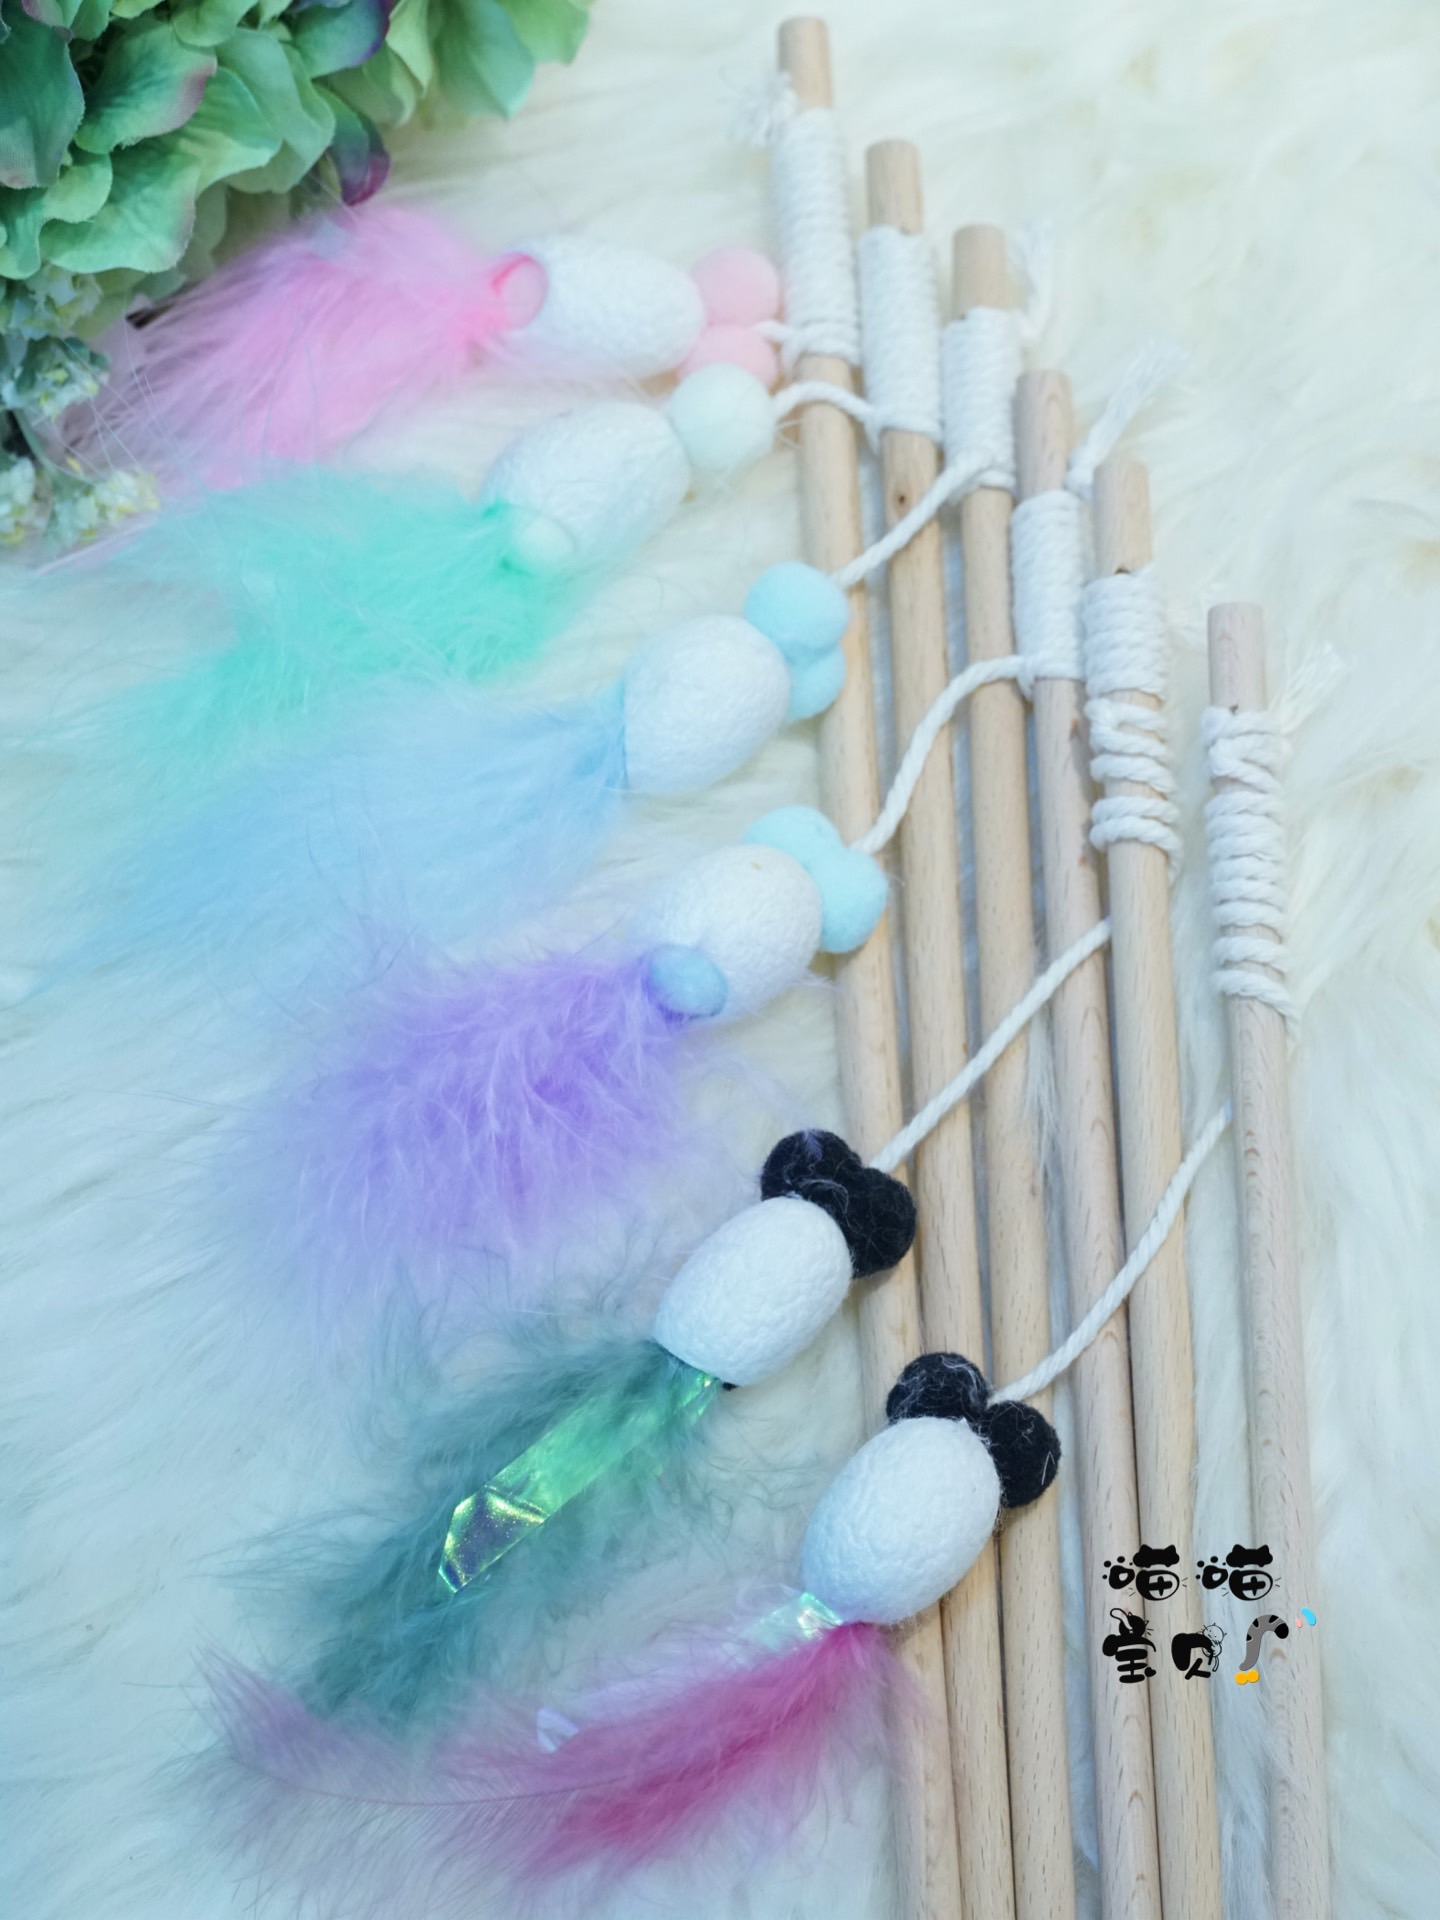 Meow baby cat Side shop cicada shell feather tease cat stick stimulate cat hunting nature cat tease cat stick